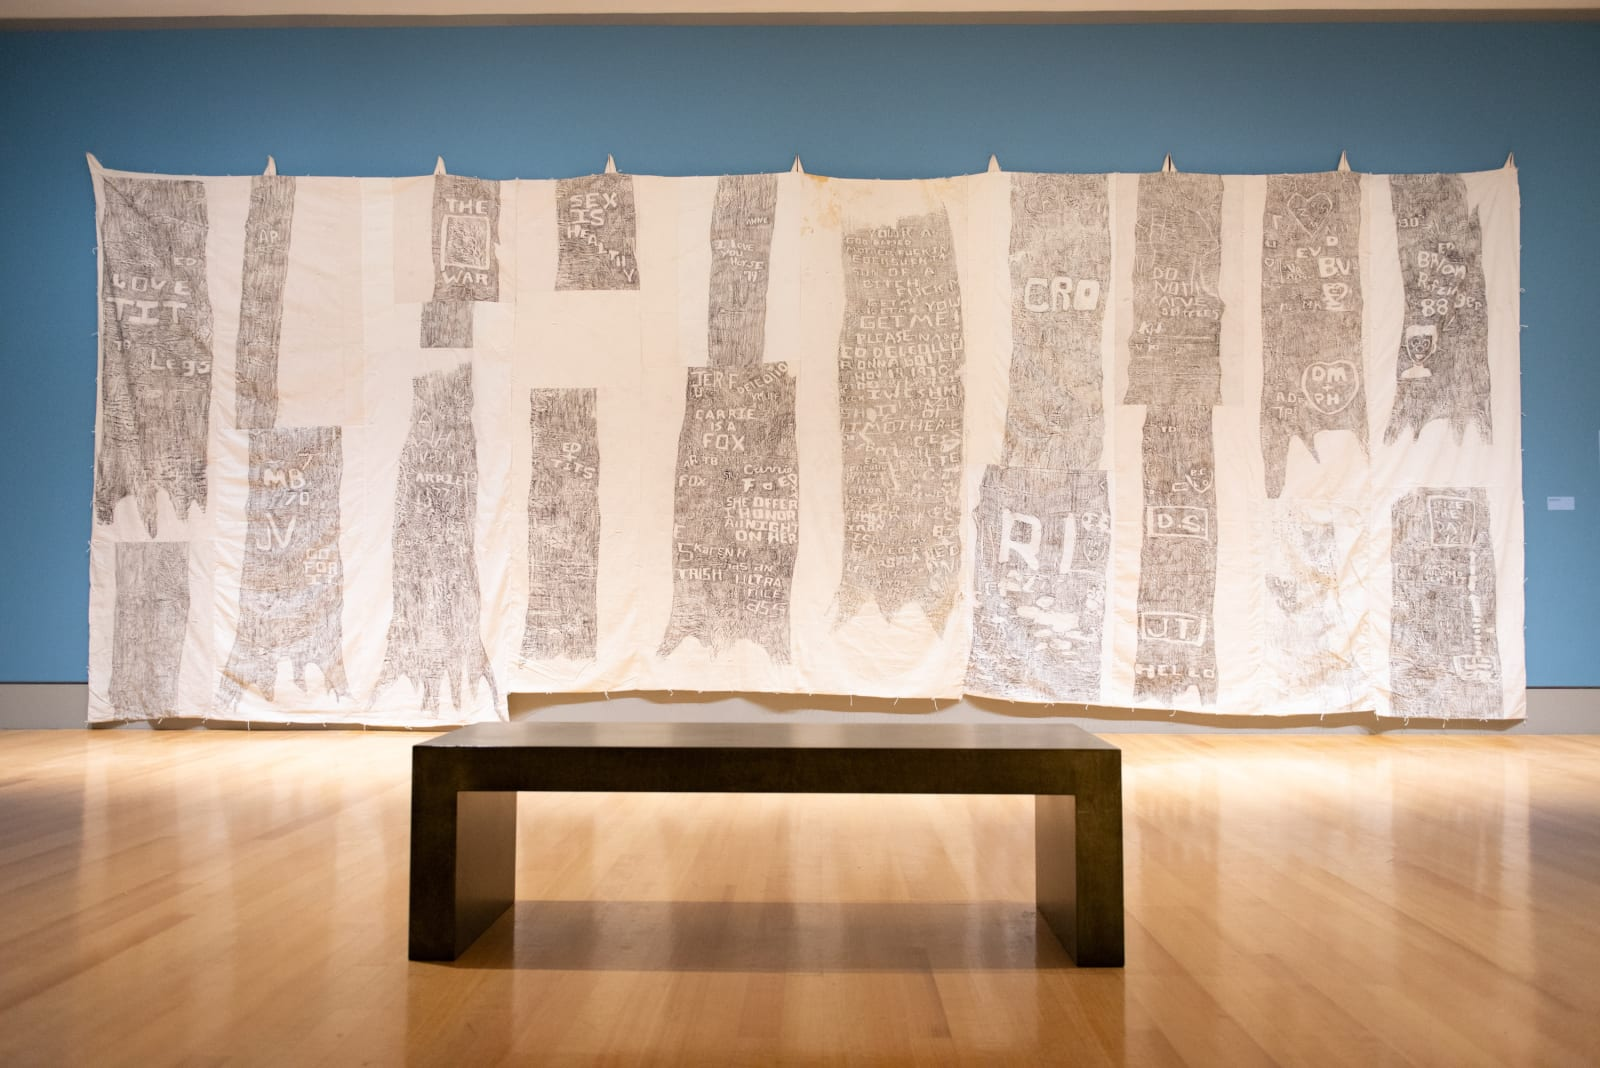 Katie Pell, The Woods, installed at the Columbia Museum of Art for her solo exhibition The Big Art of Katie Pell, 2018 Photo by Drew Baron, Courtesy of Columbia Museum of Art